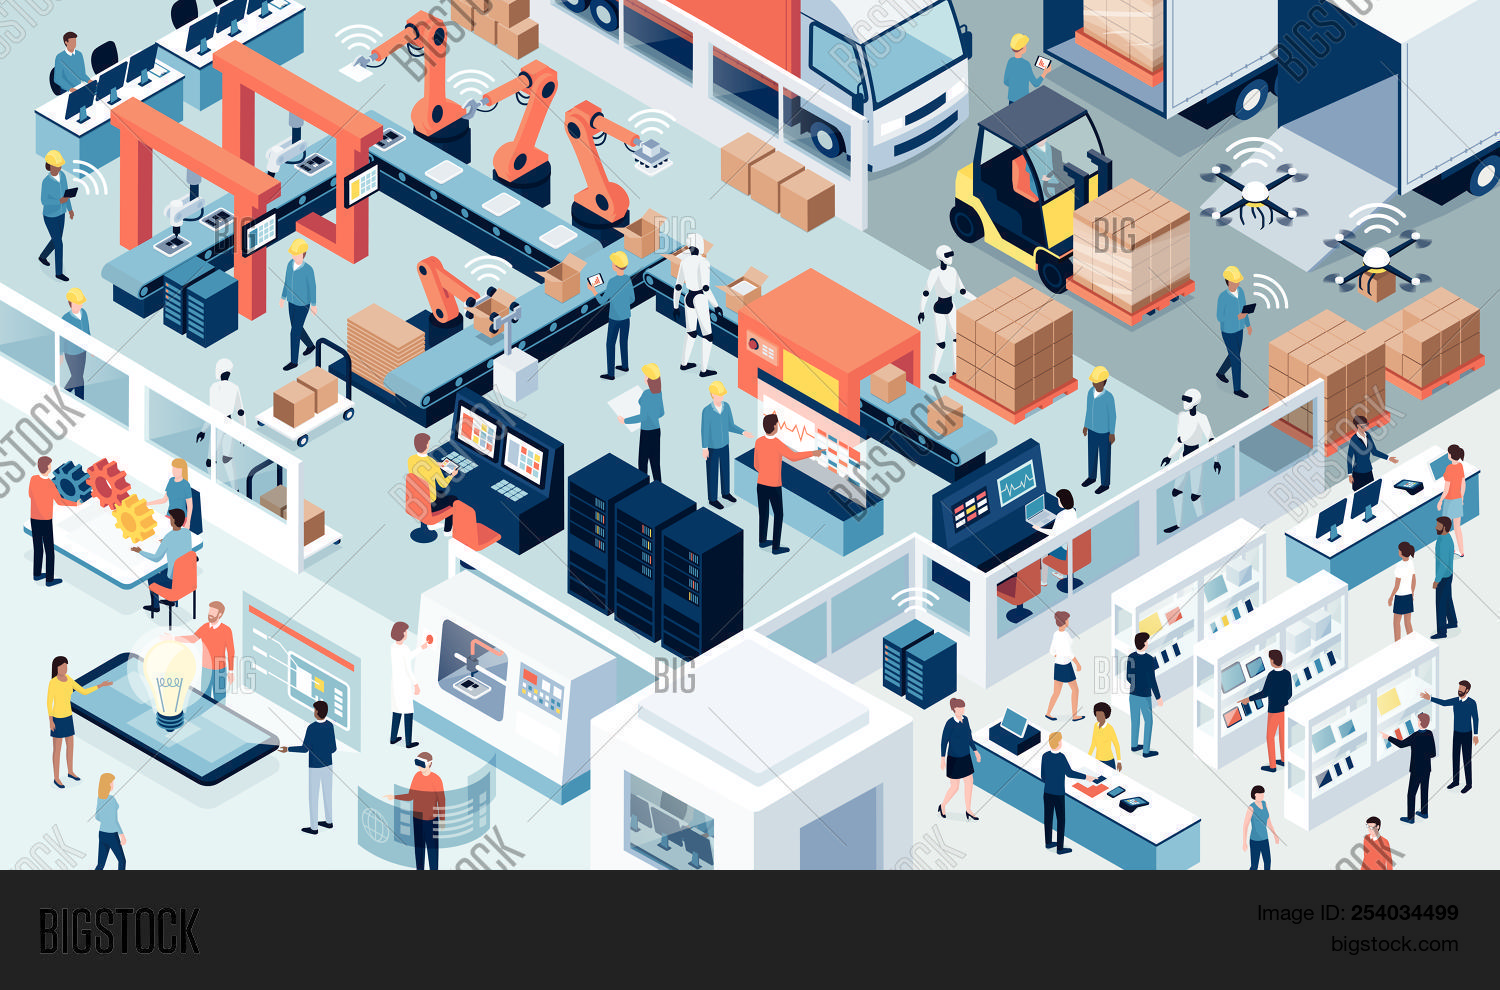 4.0,assembly,assistance,automation,computers,computing,connect,conveyor,customer,cyber-physical,data,delivery,design,digital,distribution,electronics,engineers,factory,hmi,human,industrial,industry,innovation,interface,internet,iot,isometric,line,machine,manufacture,manufacturing,of,people,process,production,products,project,retail,revolution,robots,sensors,smart,system,teamwork,technology,things,transport,transportation,truck,workers